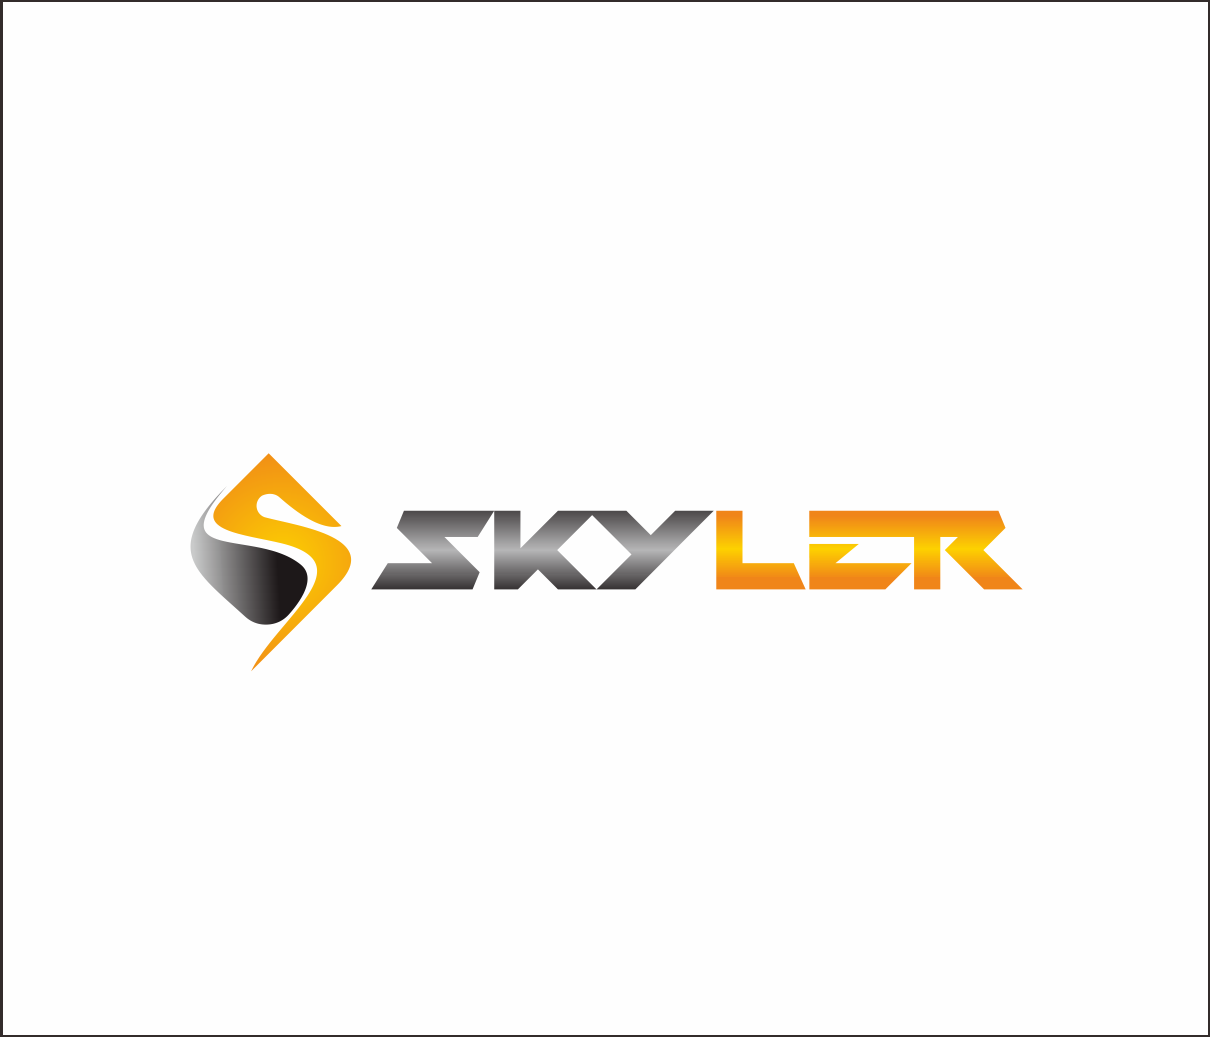 Logo Design by Armada Jamaluddin - Entry No. 250 in the Logo Design Contest Artistic Logo Design for Skyler.Asia.